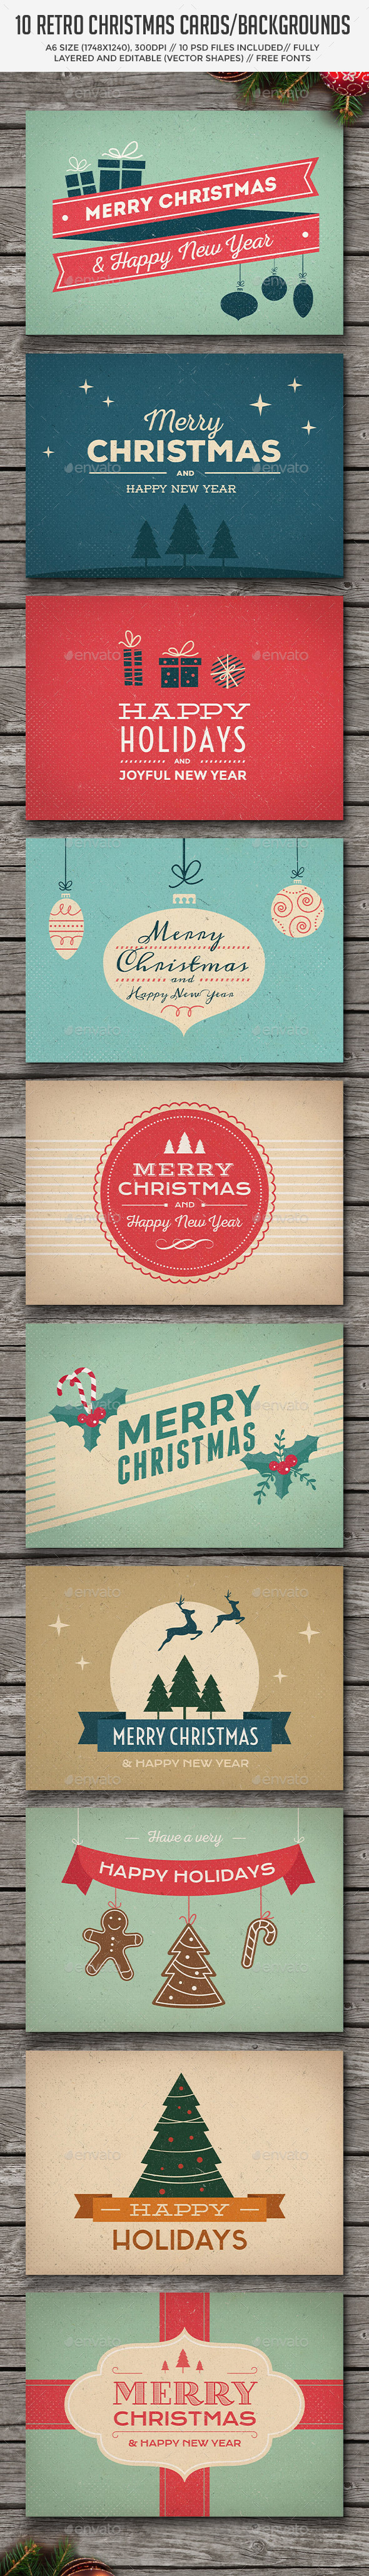 10 Retro Christmas Cards/Backgrounds - Backgrounds Graphics